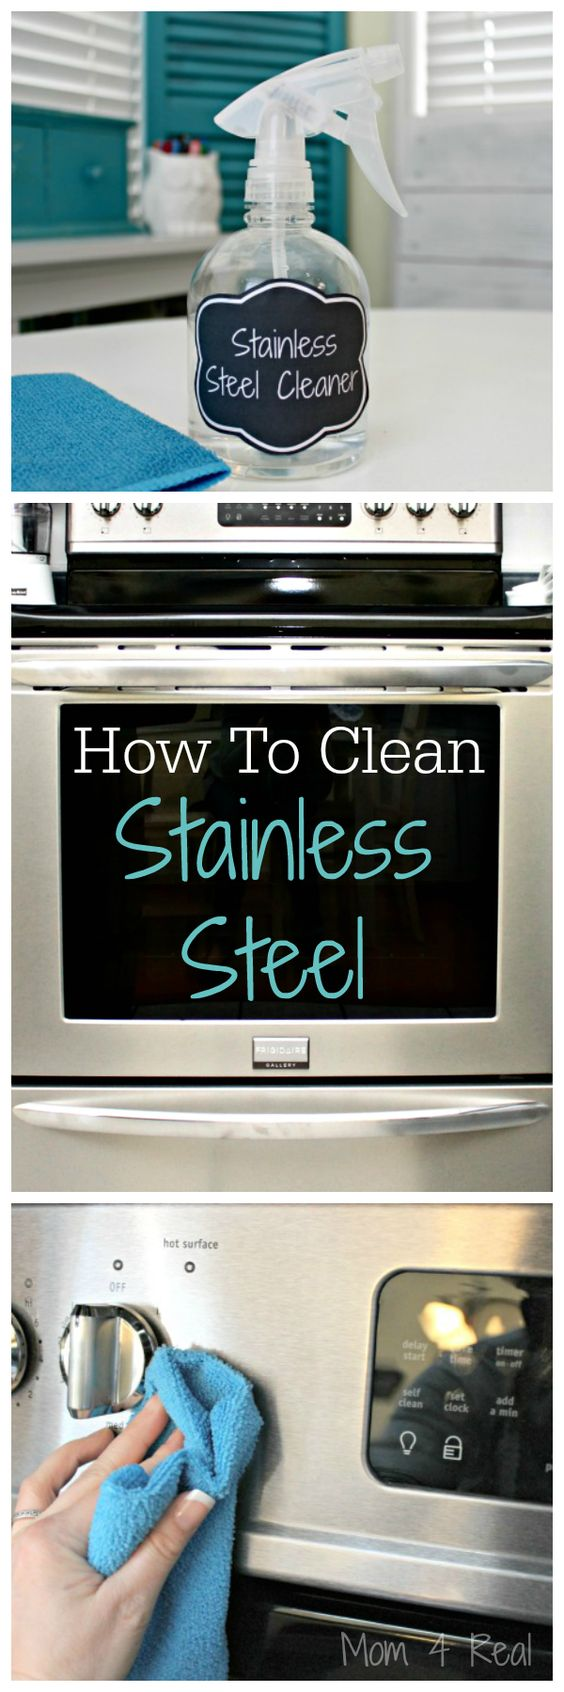 How To Clean Stainless Steel - Streak Free!